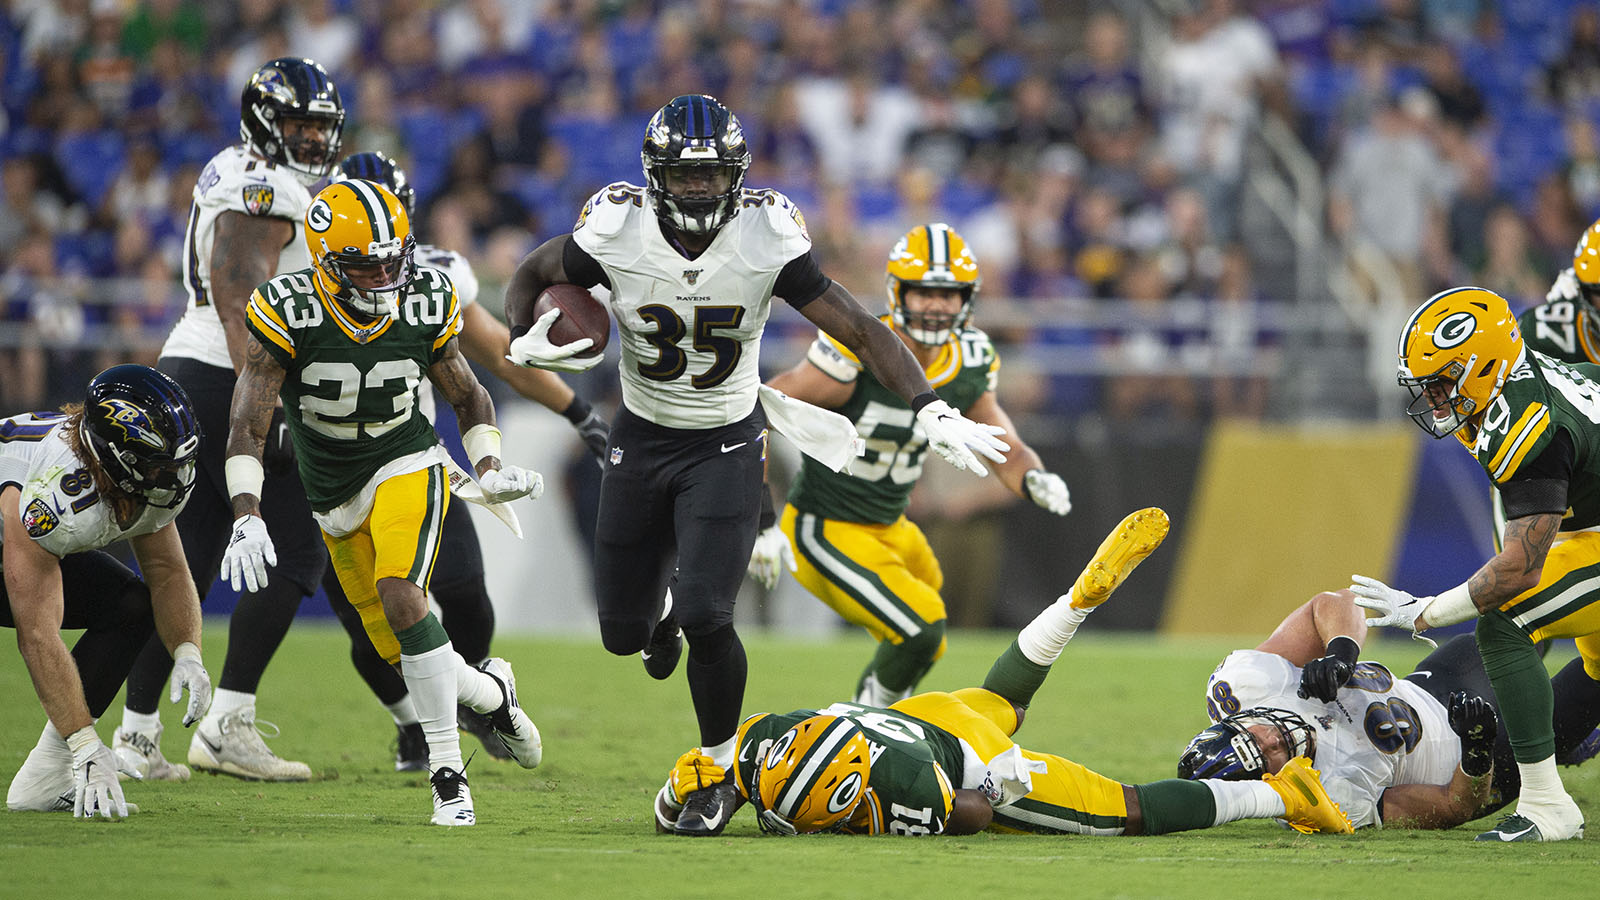 Aug 15, 2019; Baltimore, MD, USA; Baltimore Ravens running back Gus Edwards (35) breaks Green Bay Packers strong safety Adrian Amos (31) arm tackle during the first quarter as cornerback Jaire Alexander (23)  defends at M&T Bank Stadium. Mandatory Credit: Tommy Gilligan-USA TODAY Sports